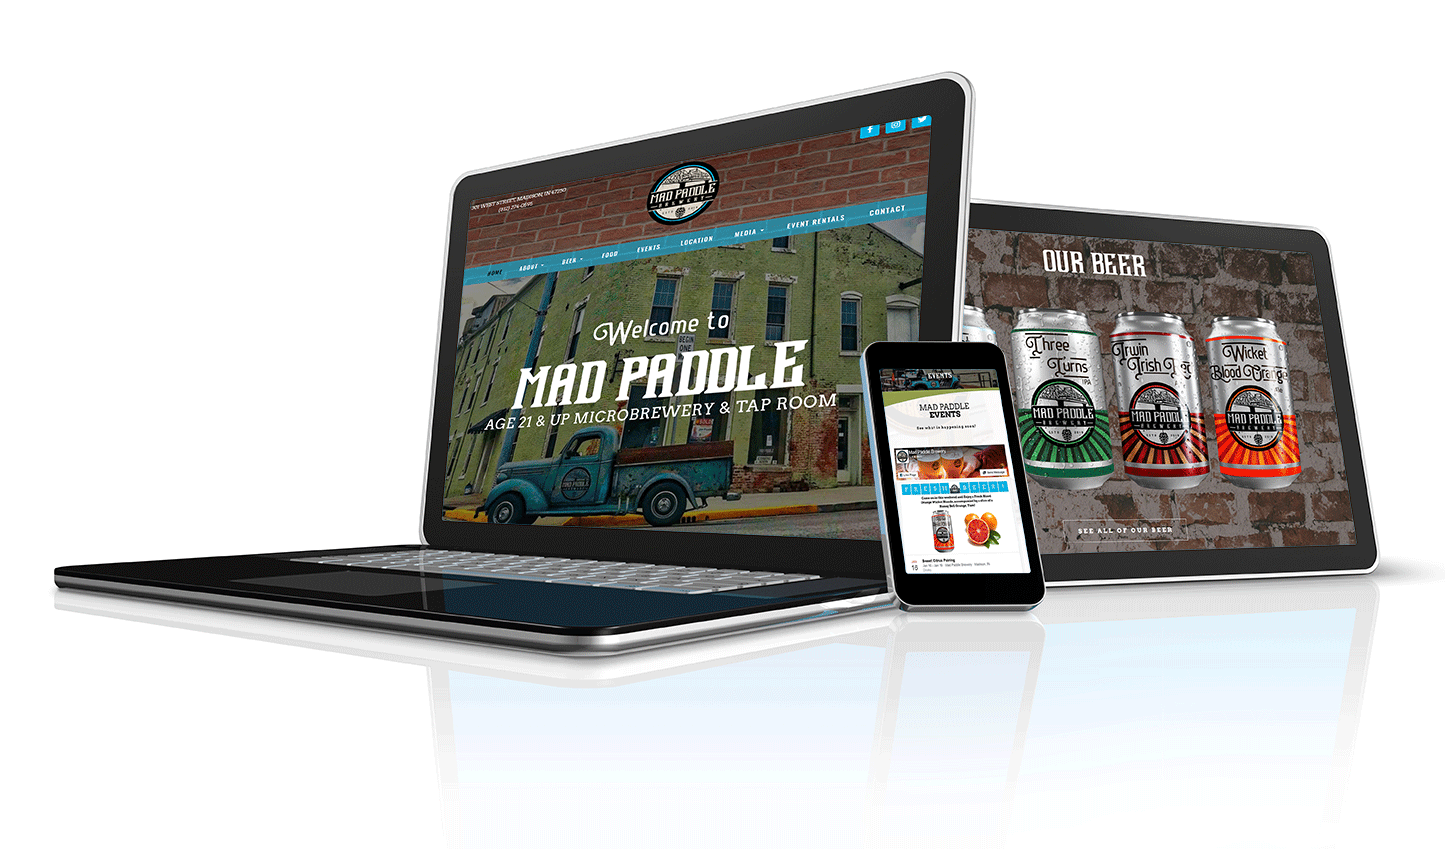 Mad Paddle Brewery example of responsive craft beer website design displayed on all devices